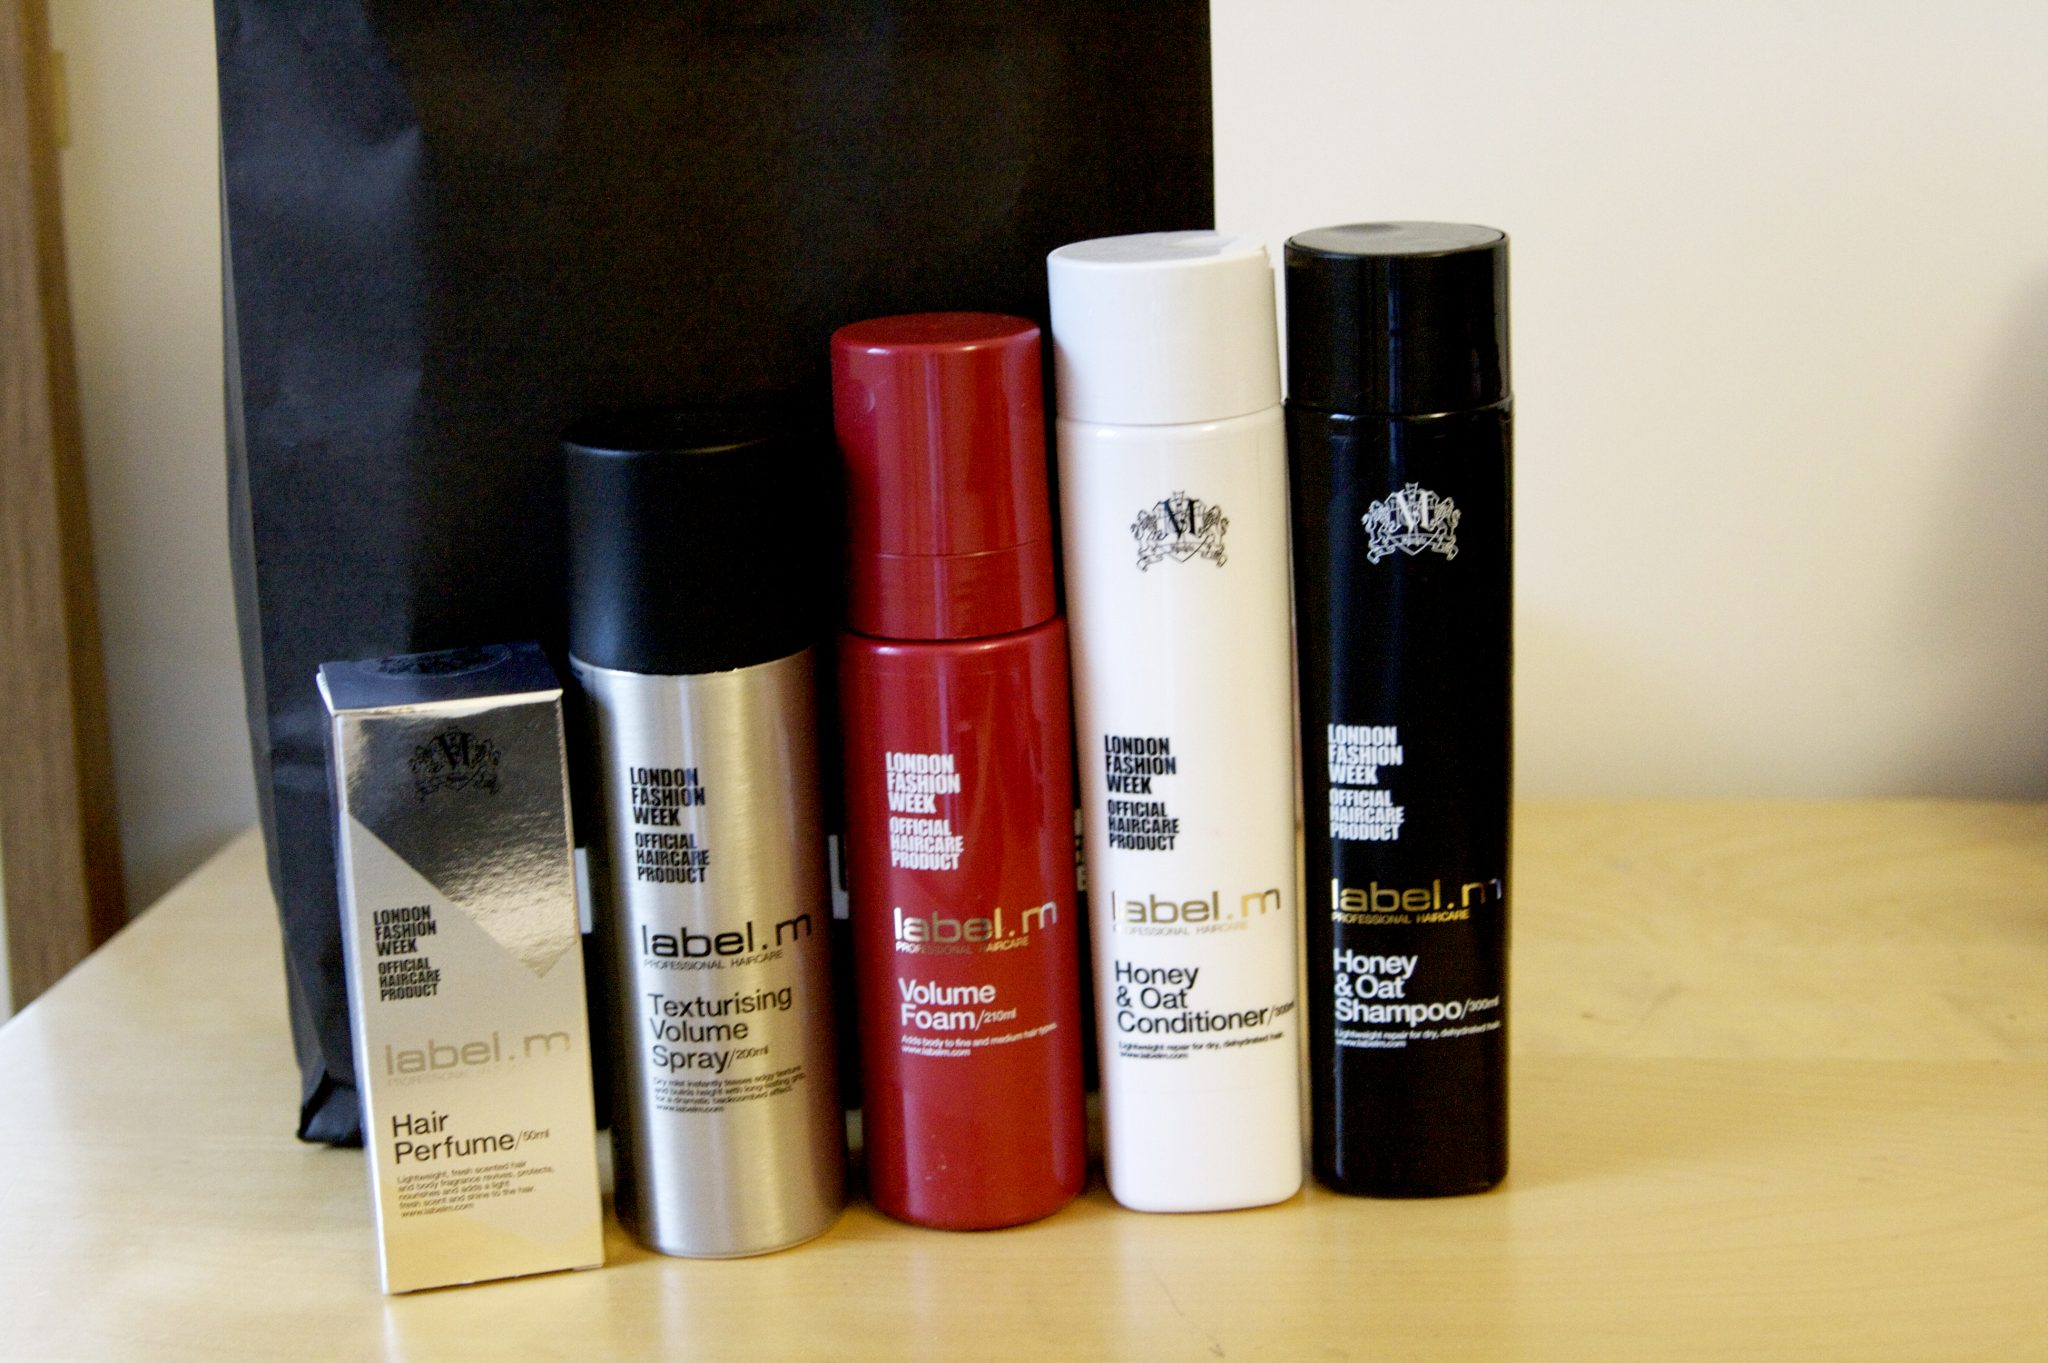 Toni and Guy Label M hair styling and hair care products. Official hair care for London Fashion Week. Volume Foam, honey and oat shampoo conditioner, hair perfume, texturising volume spray. Manchester fashion and lifestyle blog.